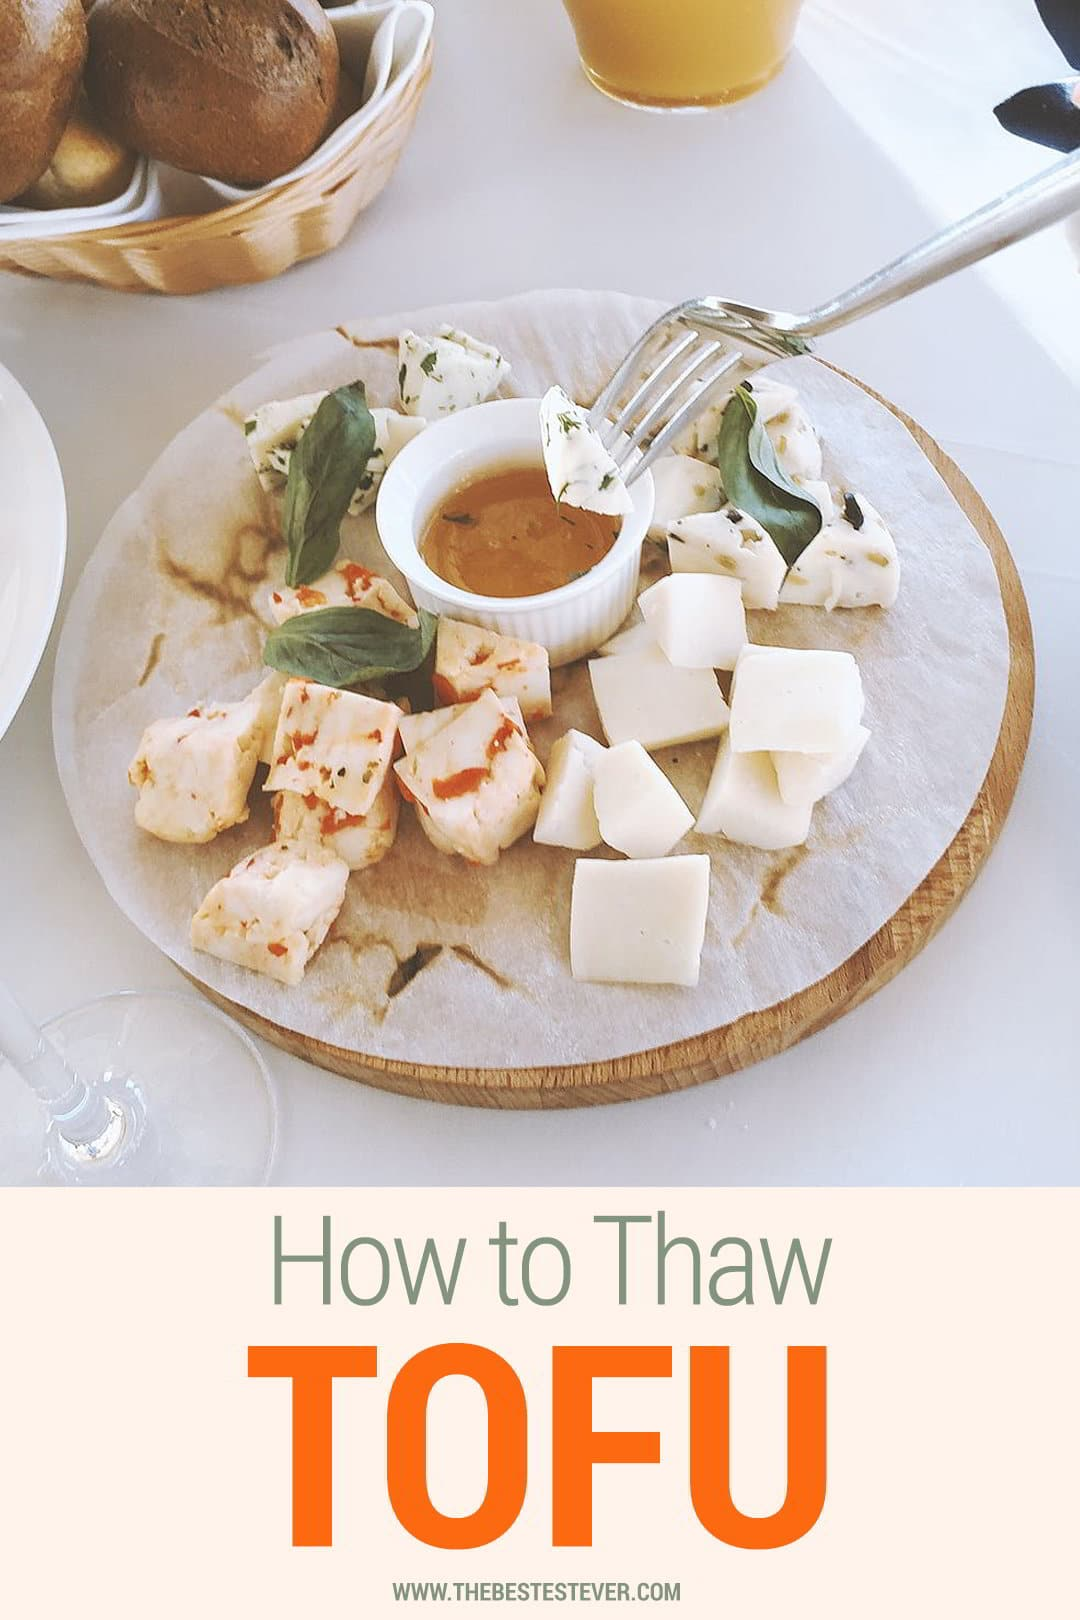 How to Thaw Tofu: The 3 Best Options Highlighted